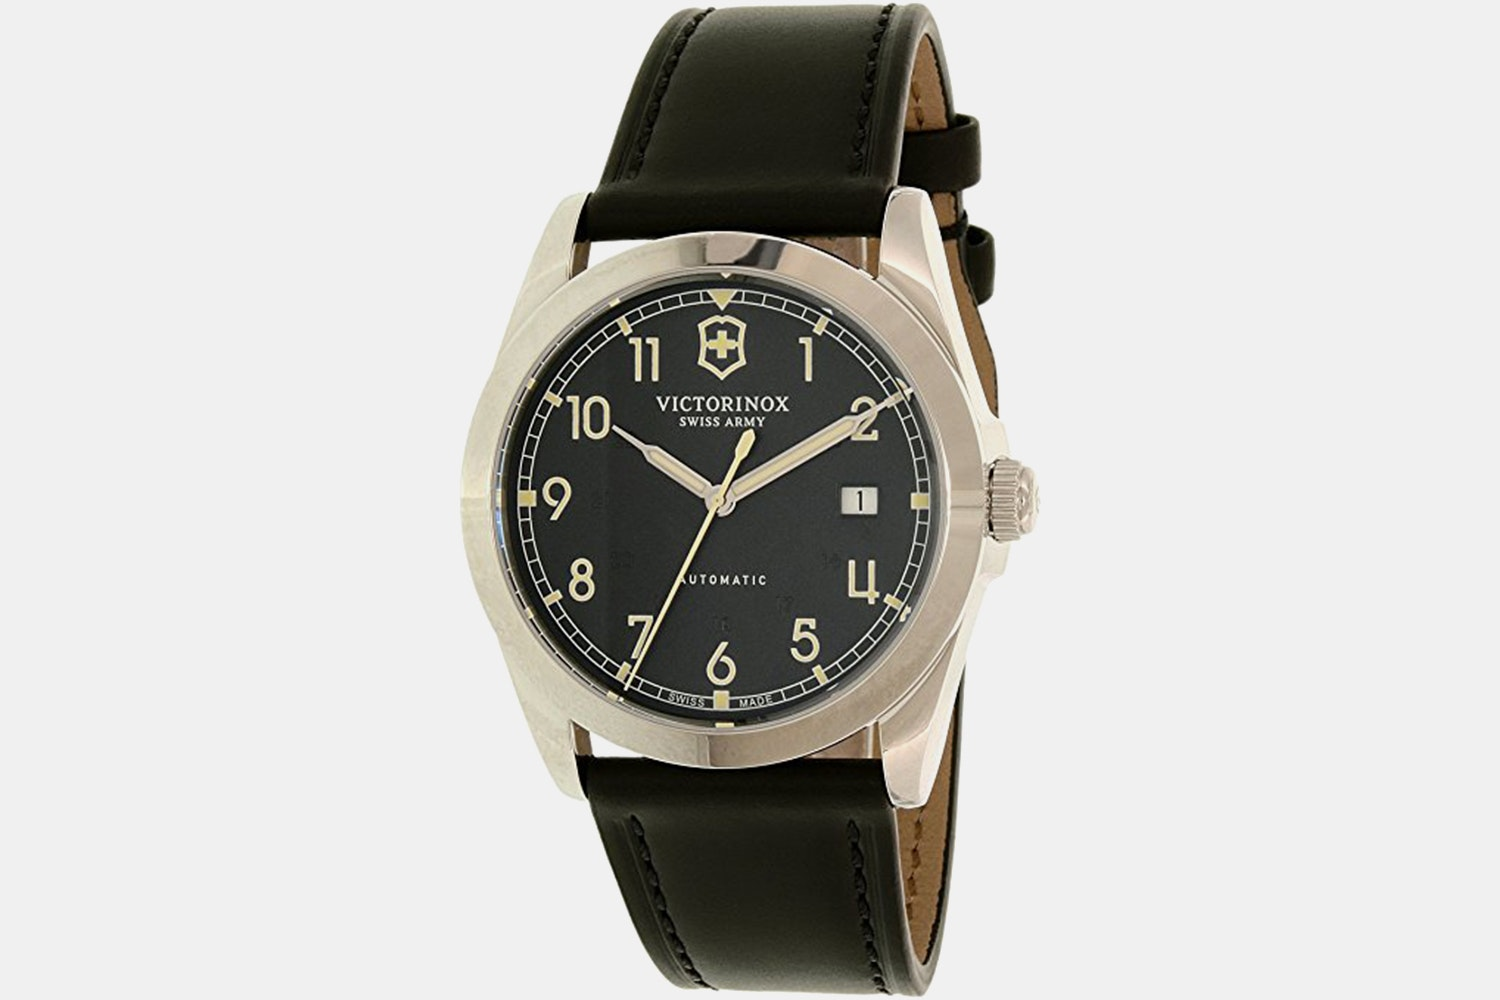 241586 (black dial, black leather strap)